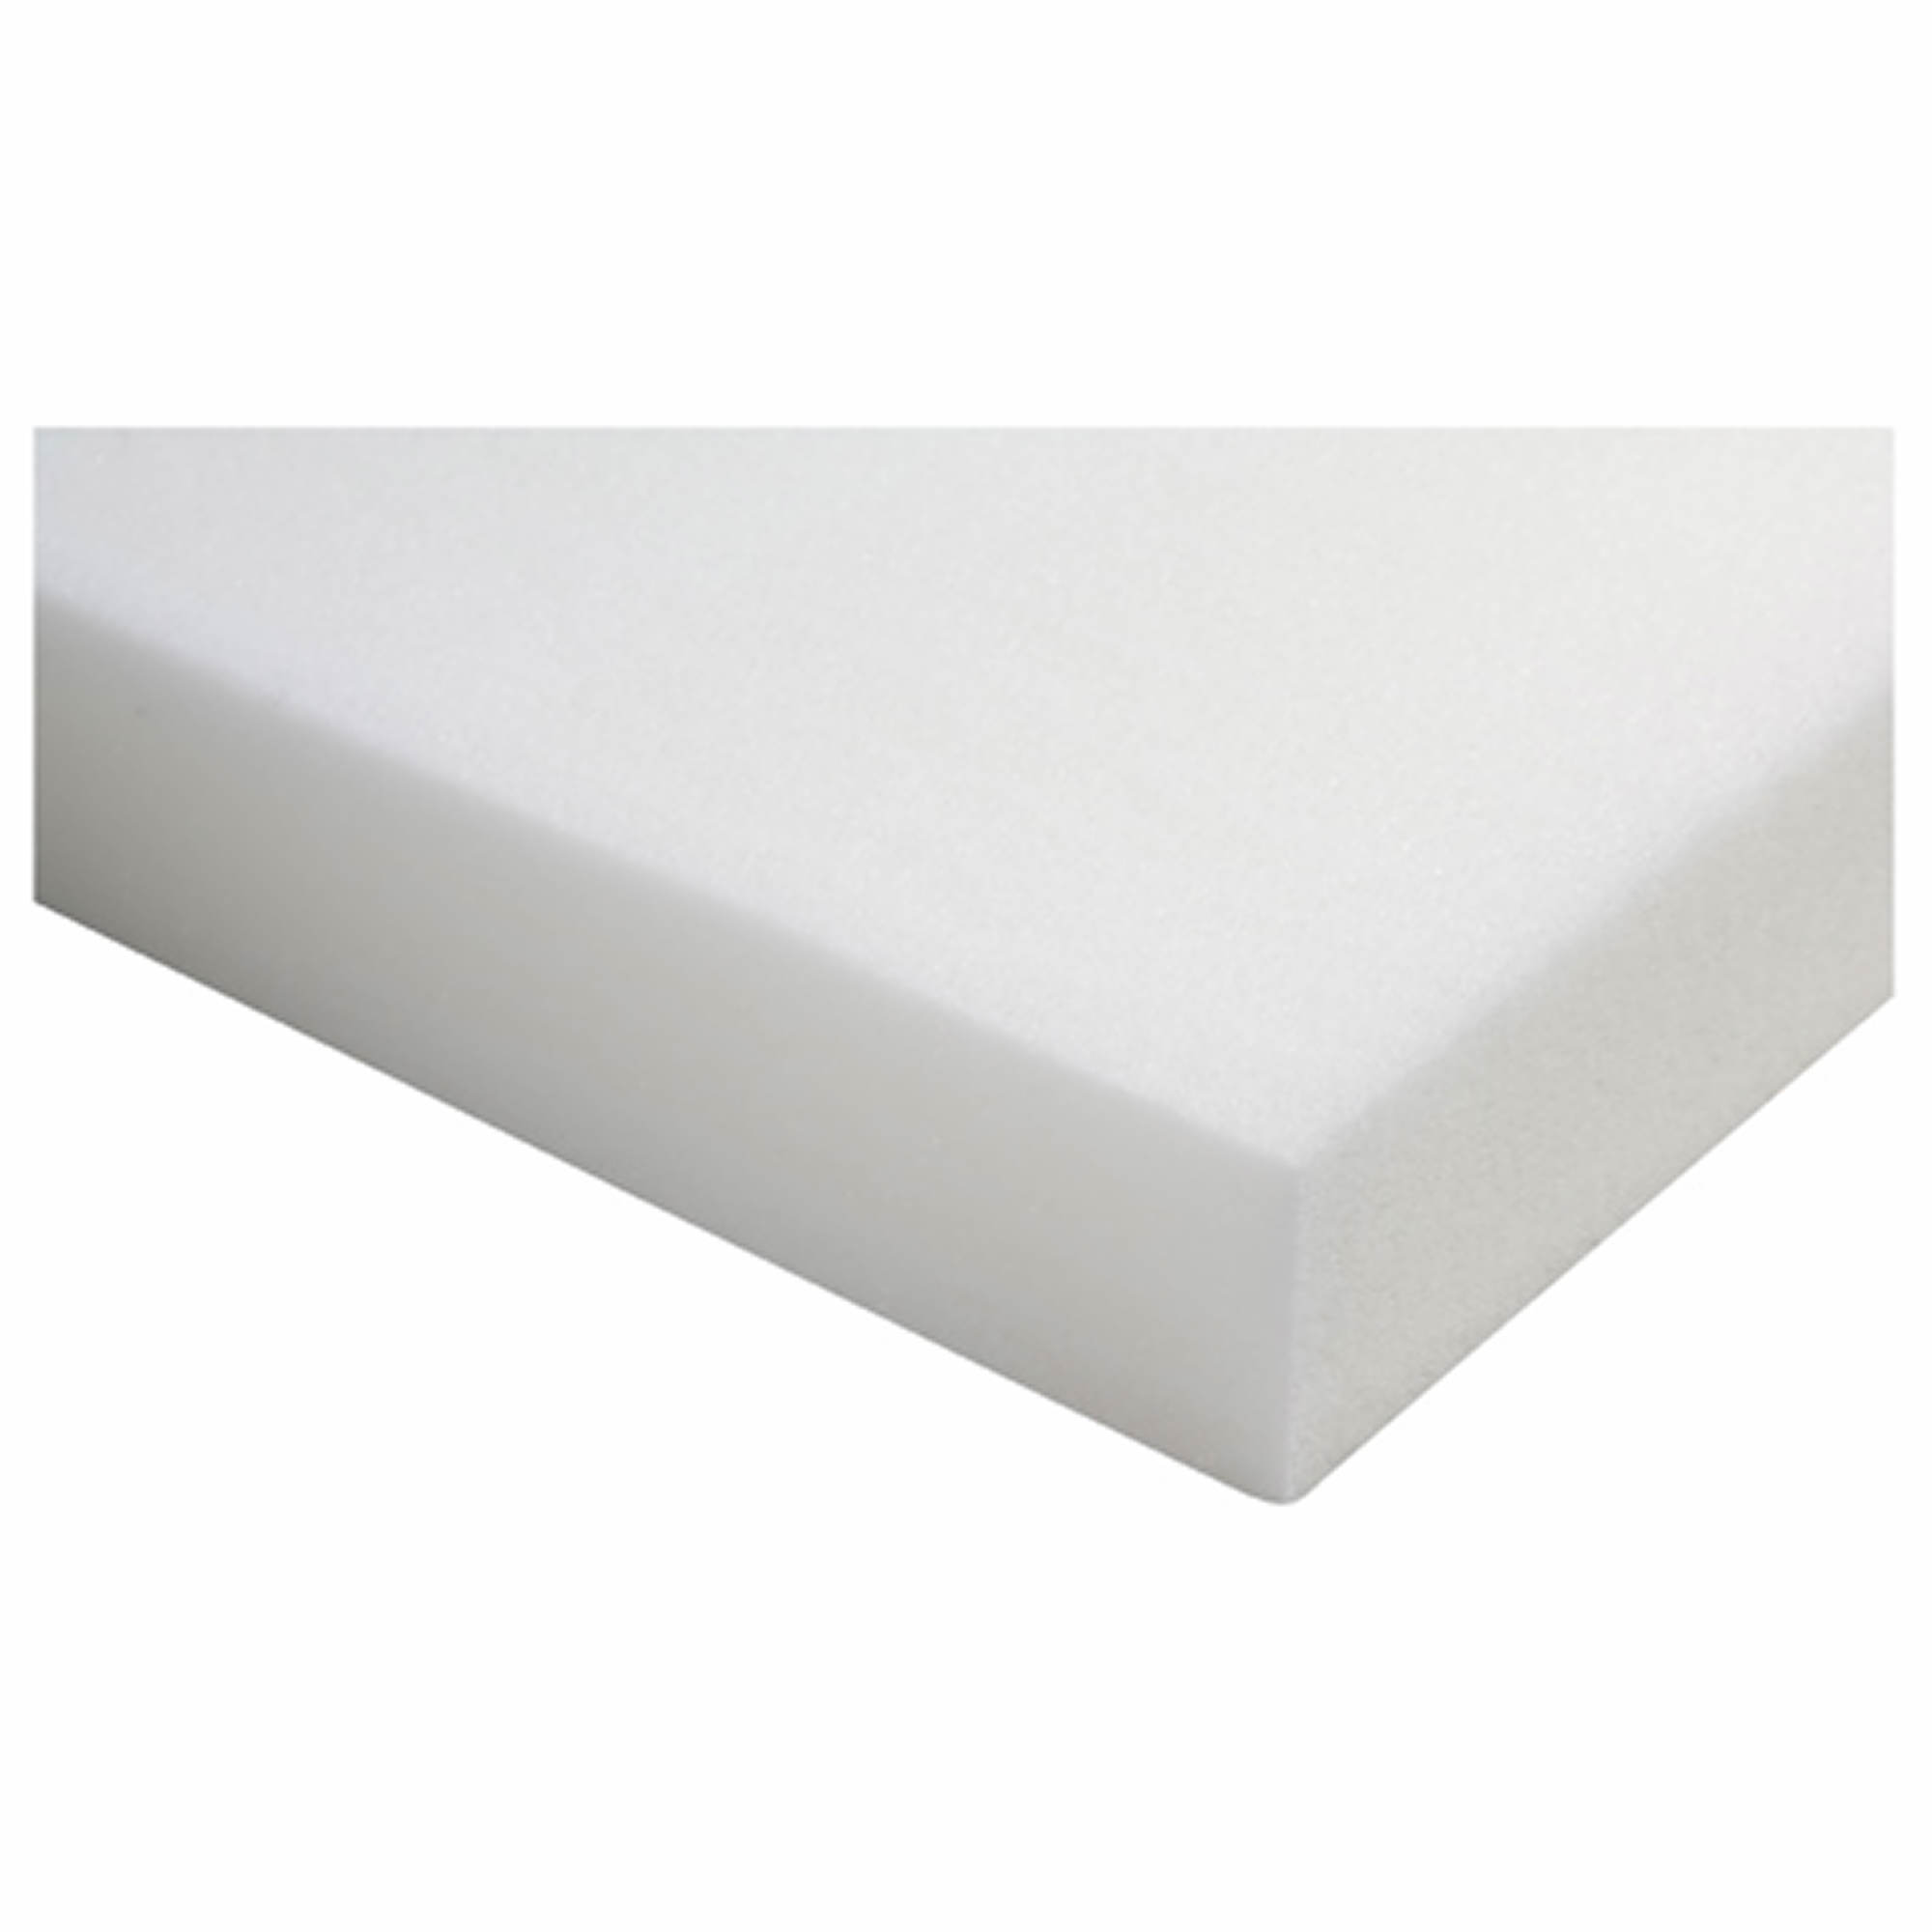 Cradlesoft university 1 1 2 memory foam mattress topper twin xl bj 39 s wholesale club Memory foam mattress topper twin